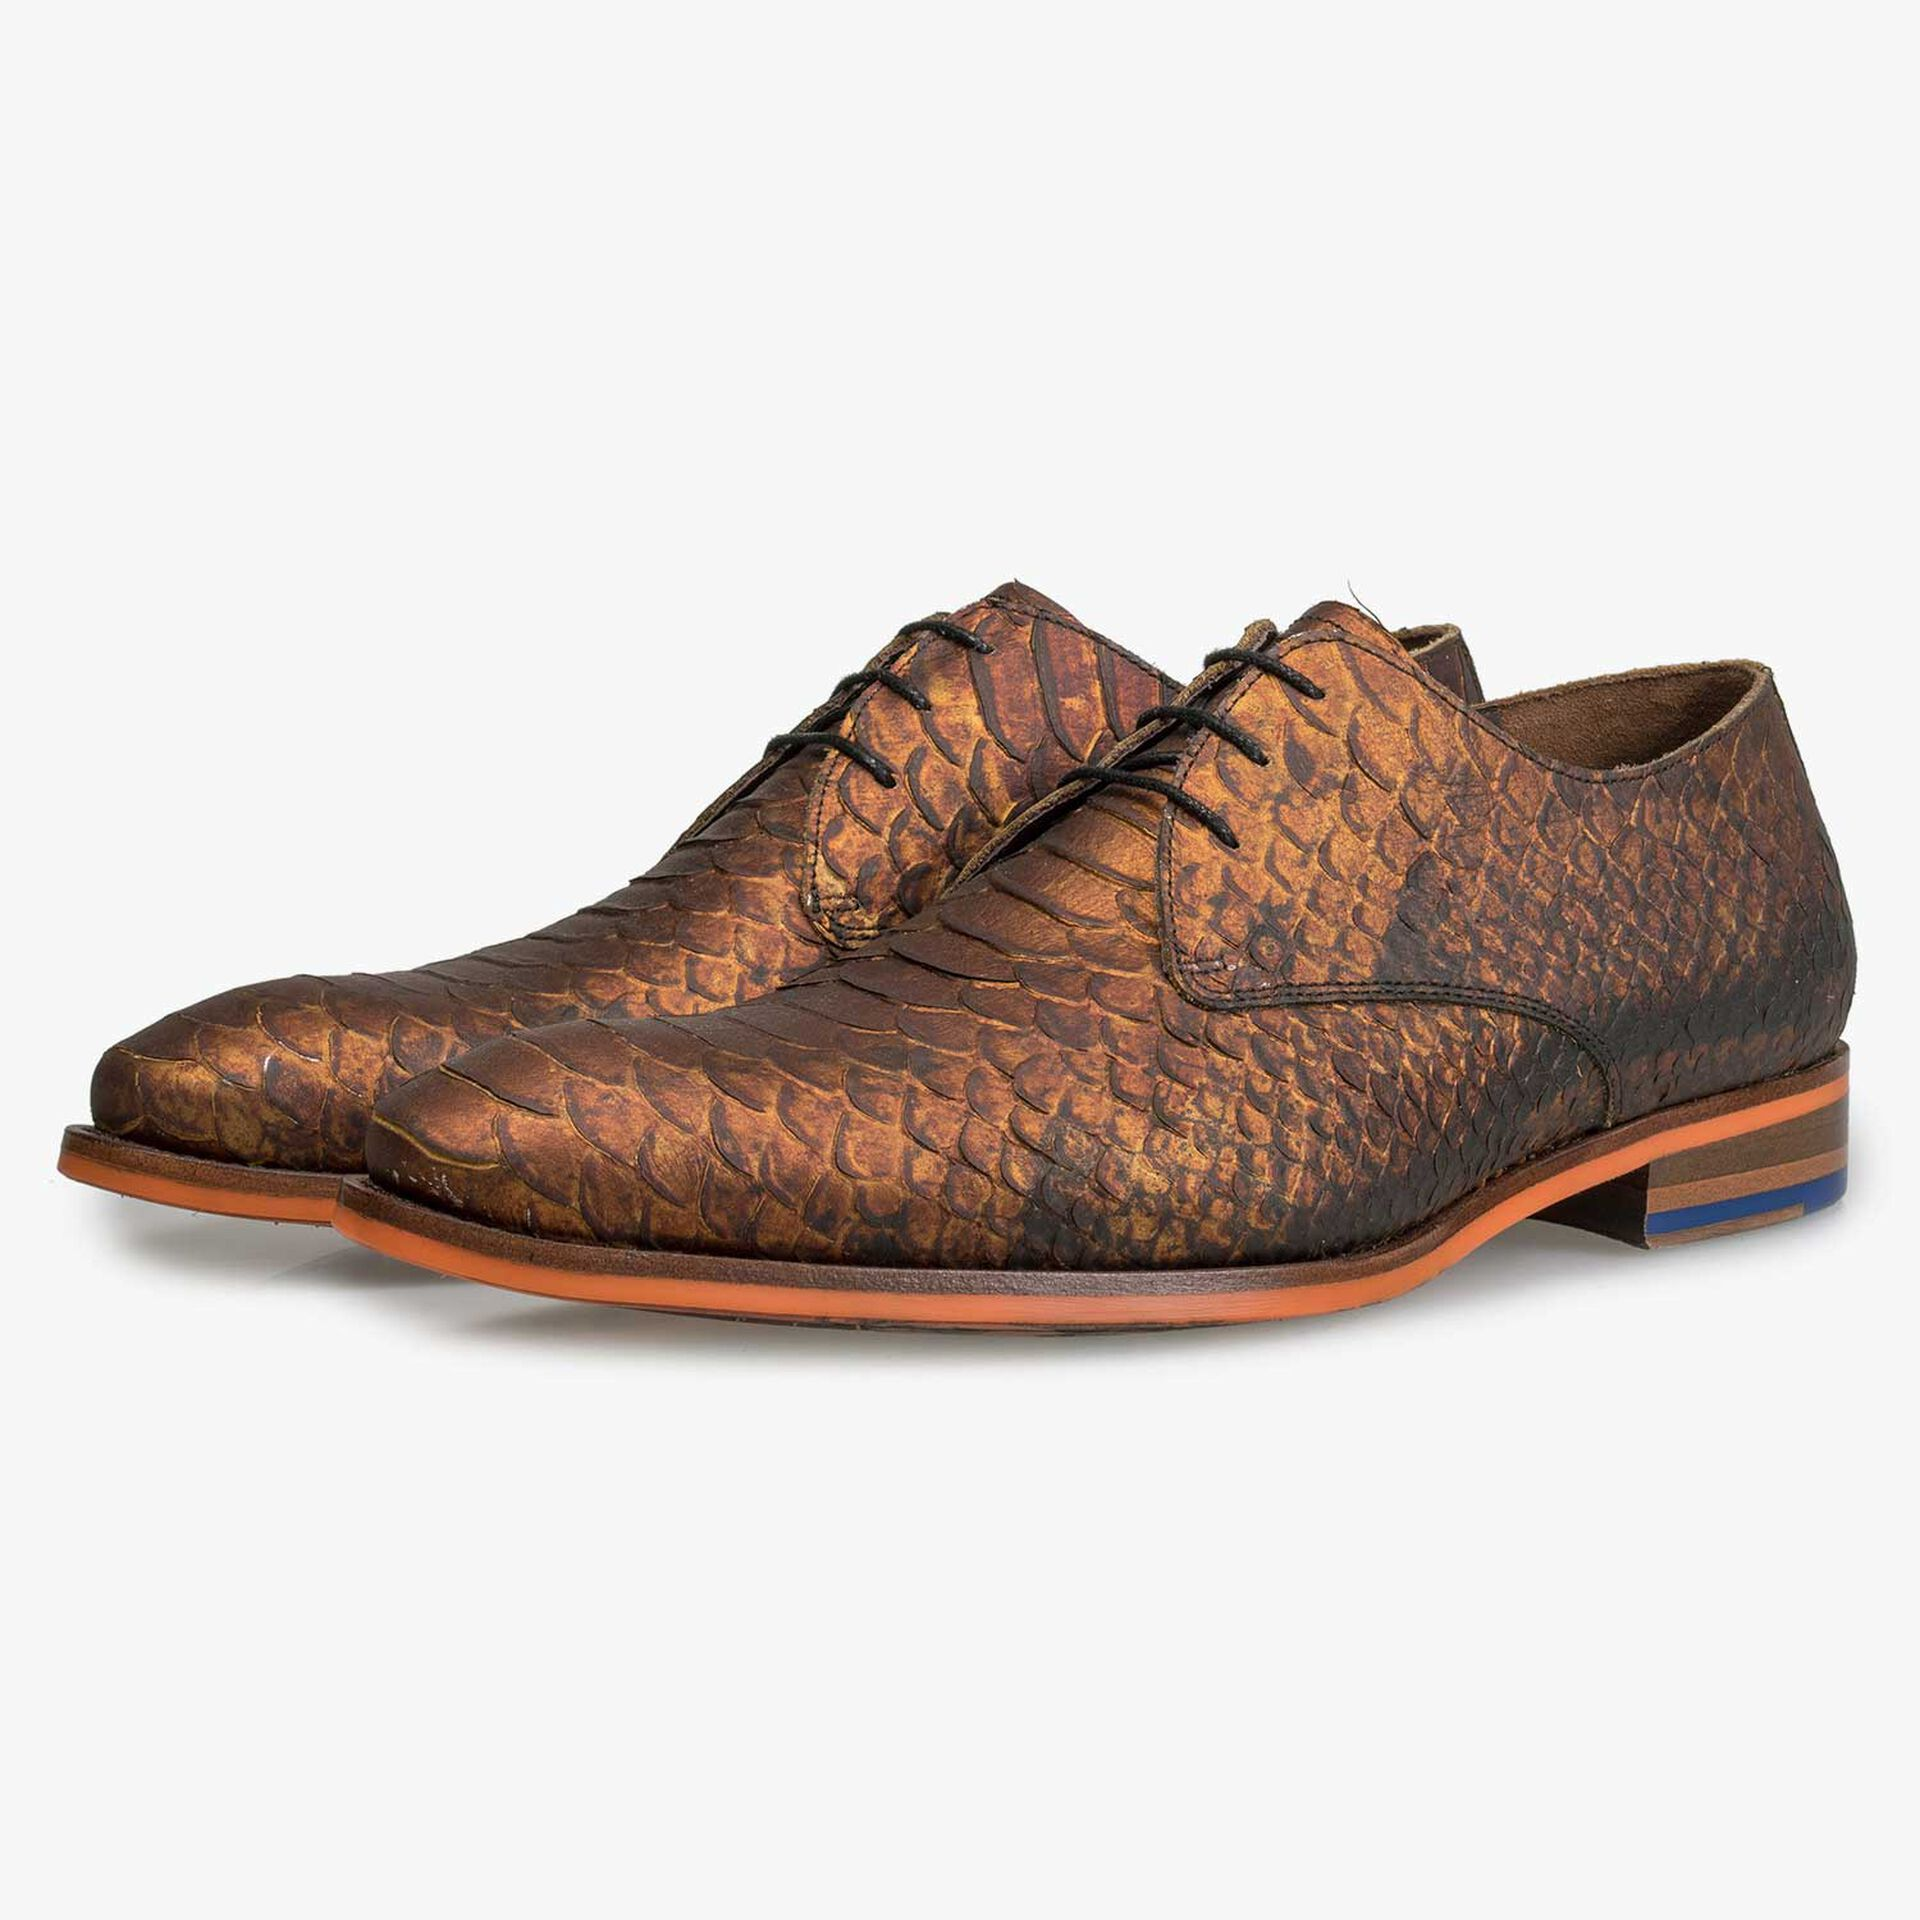 Calf leather lace shoe with snake print